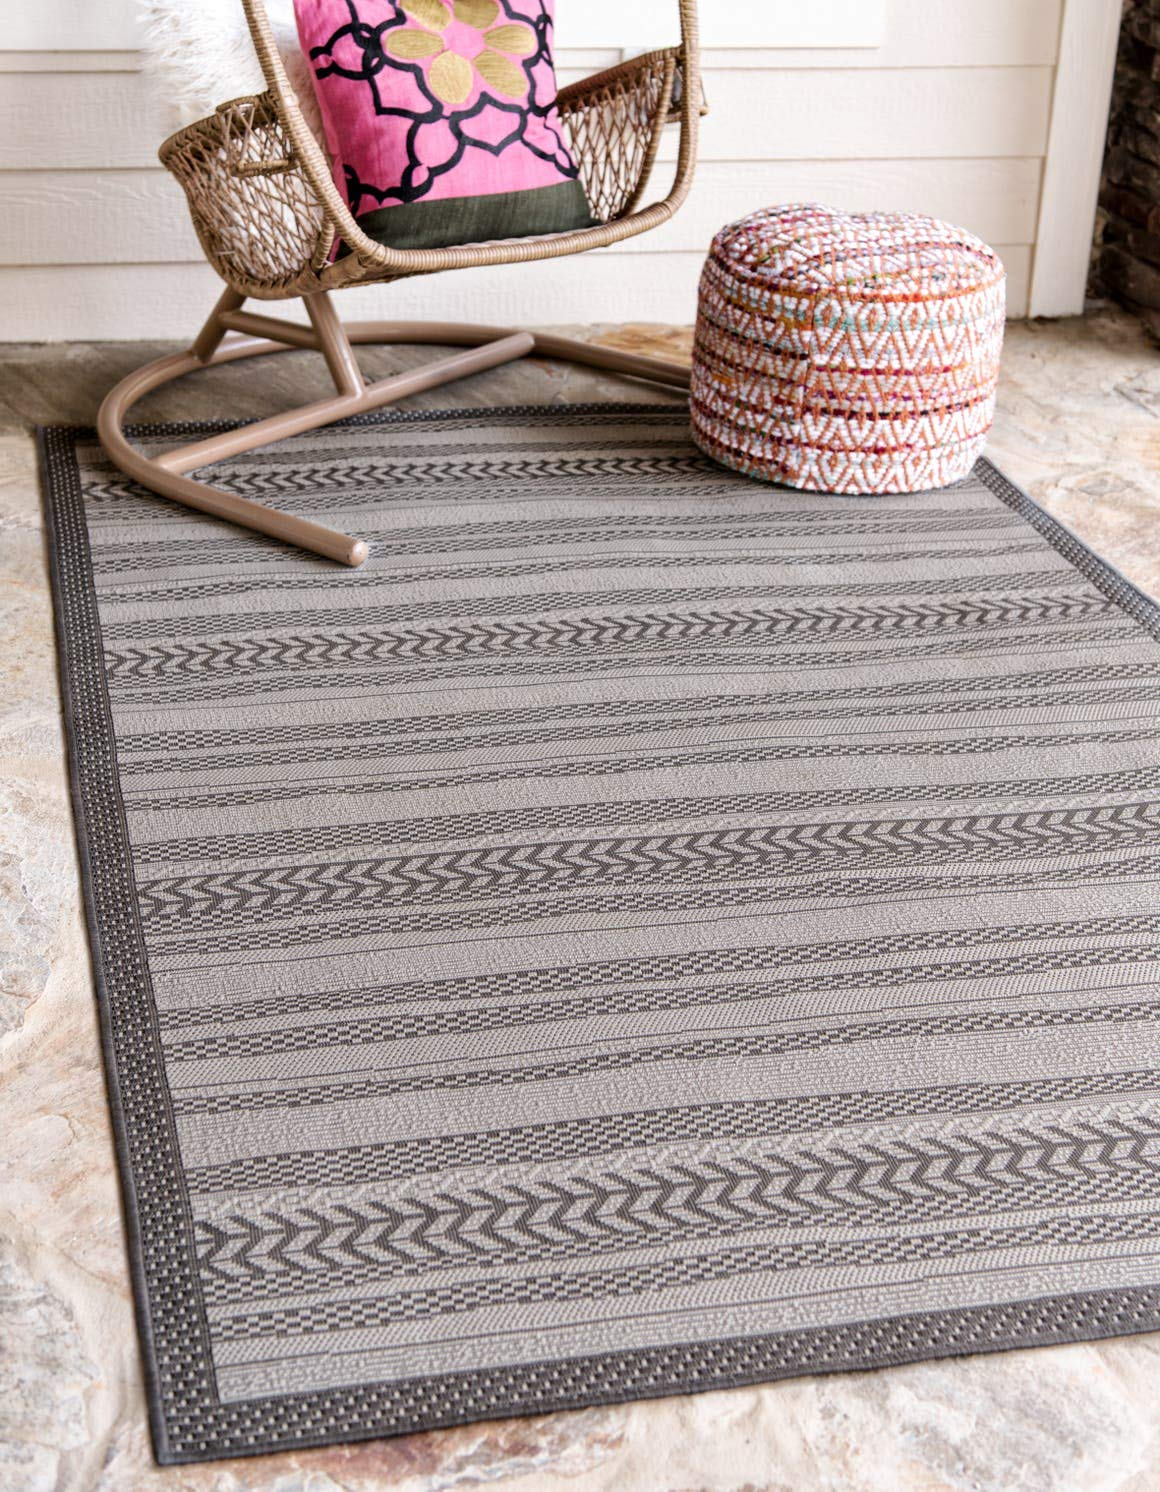 Unique Loom Outdoor Border Collection Striped Moroccan Transitional Indoor and Outdoor Flatweave Gray Area Rug 4 0 x 6 0